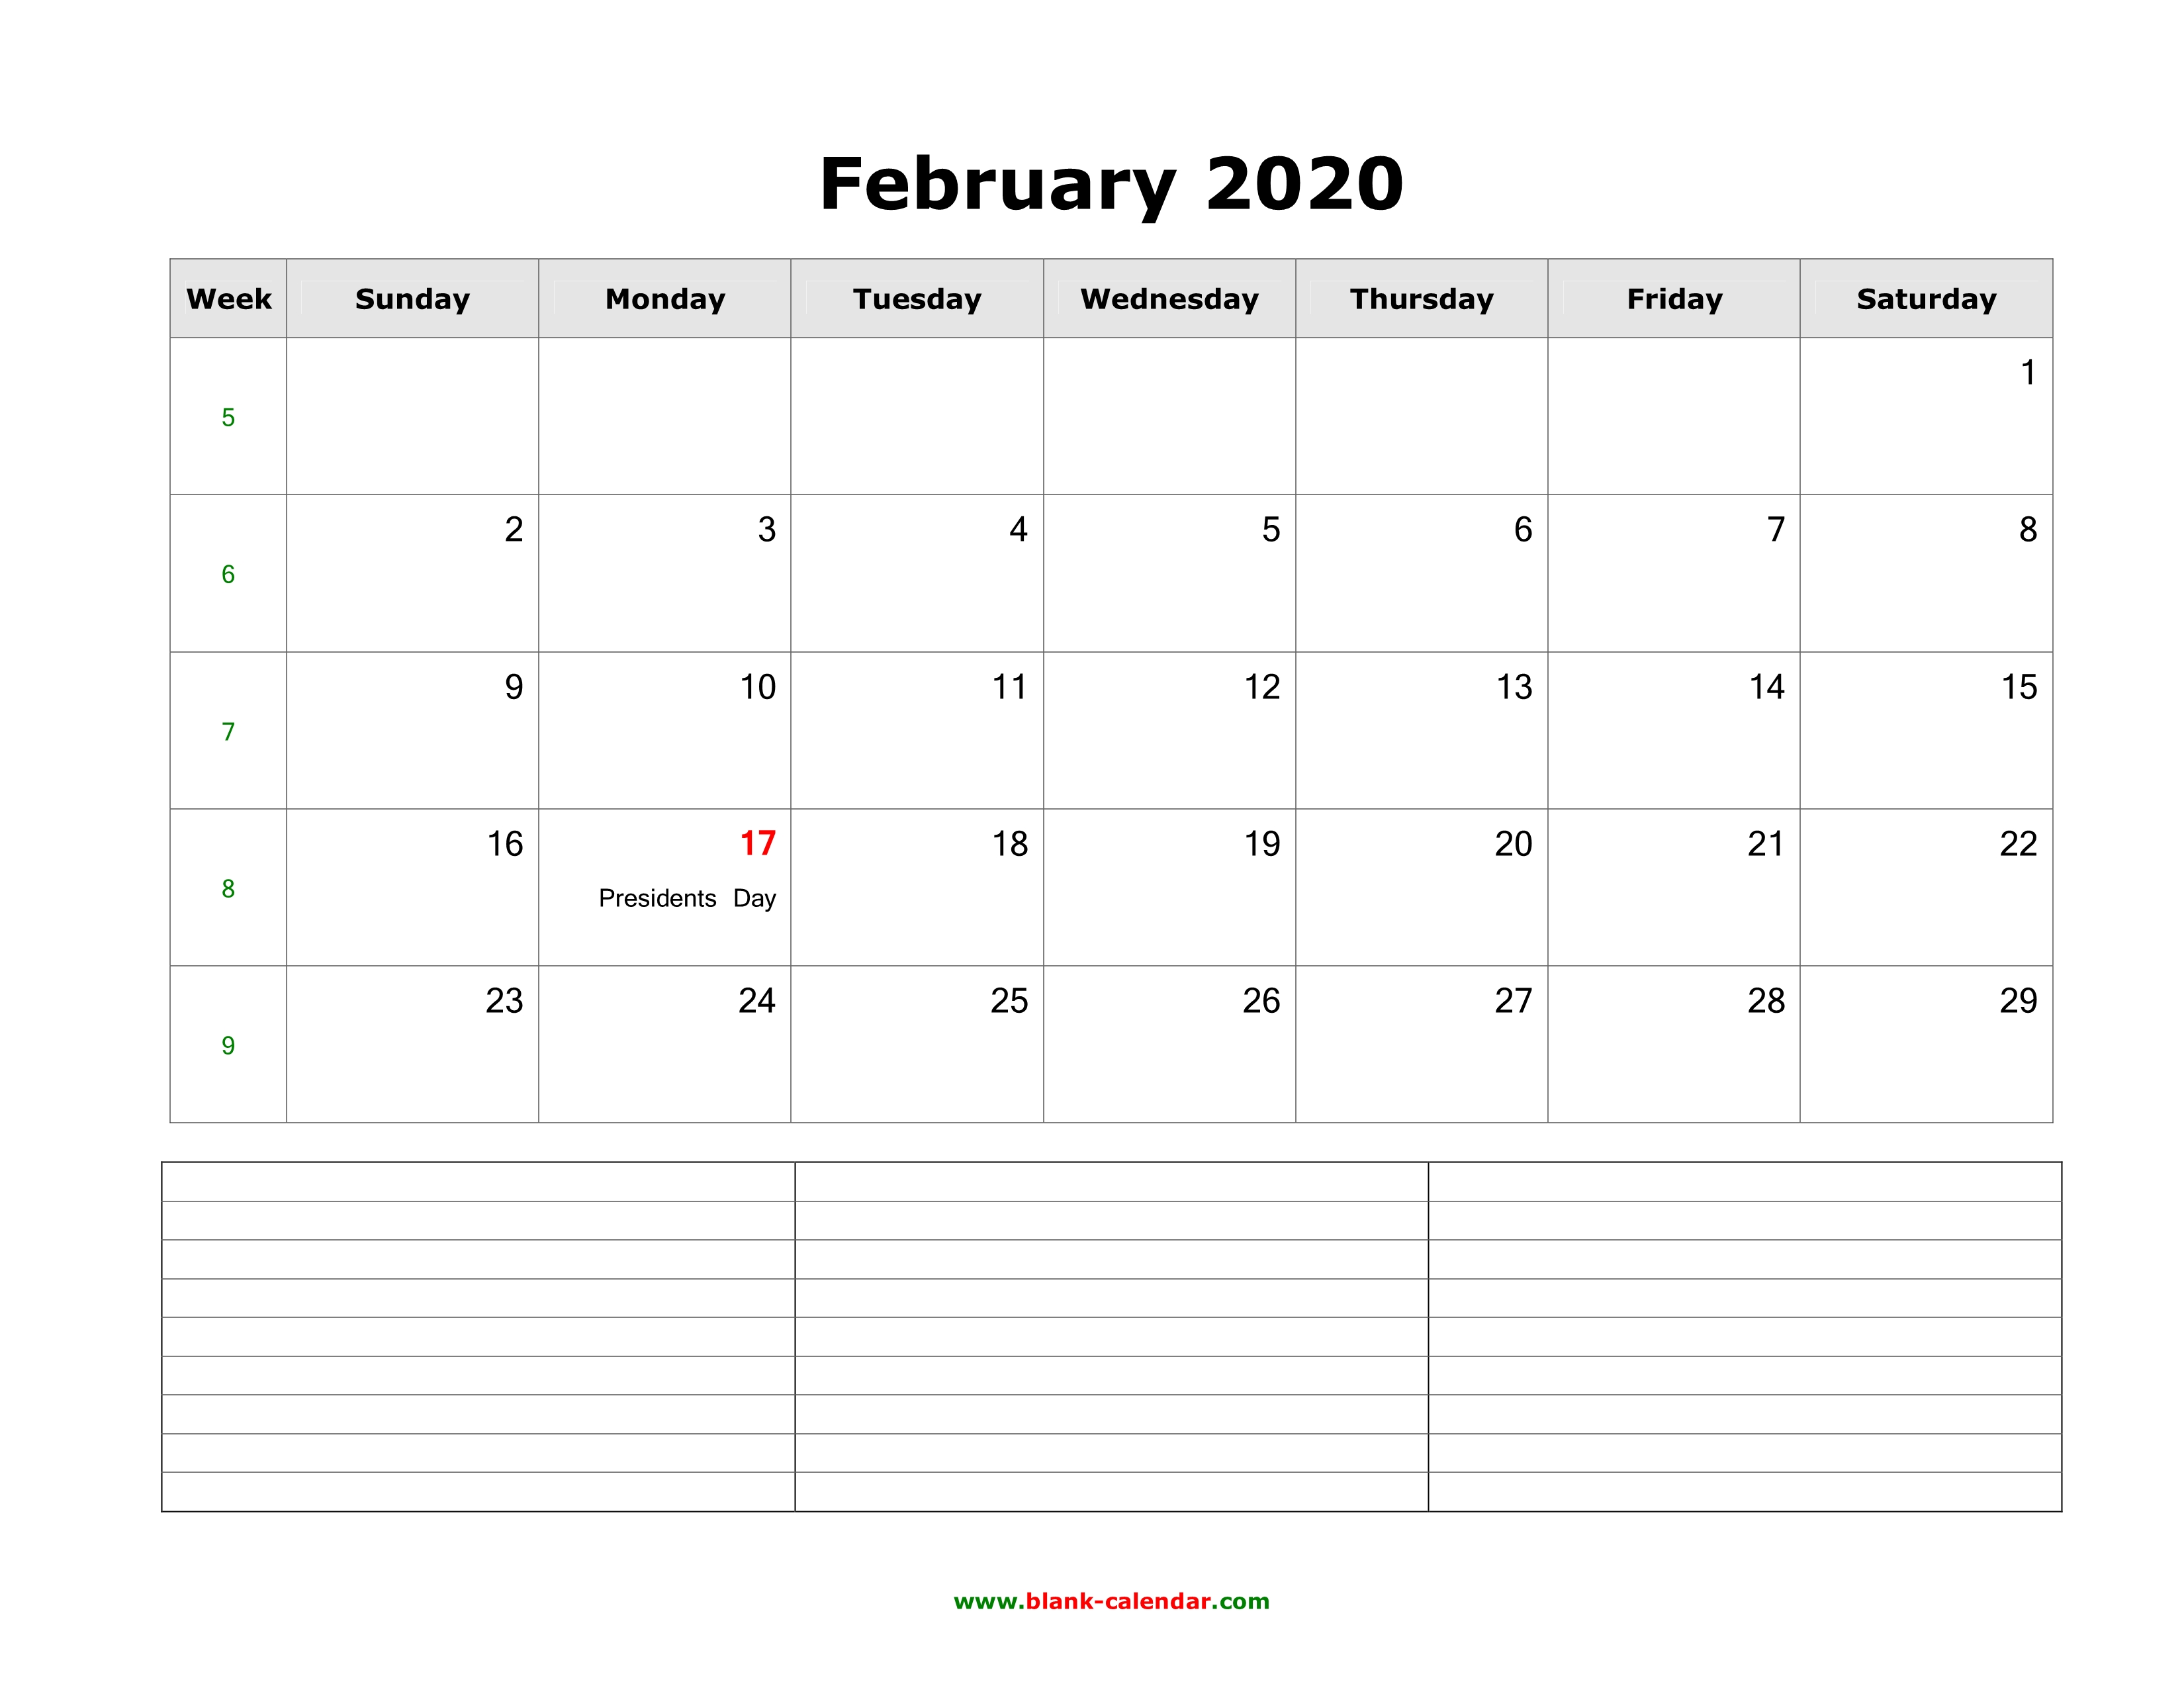 February 2020 Landscape Calendar Download February 2020 Blank Calendar with Space for Notes